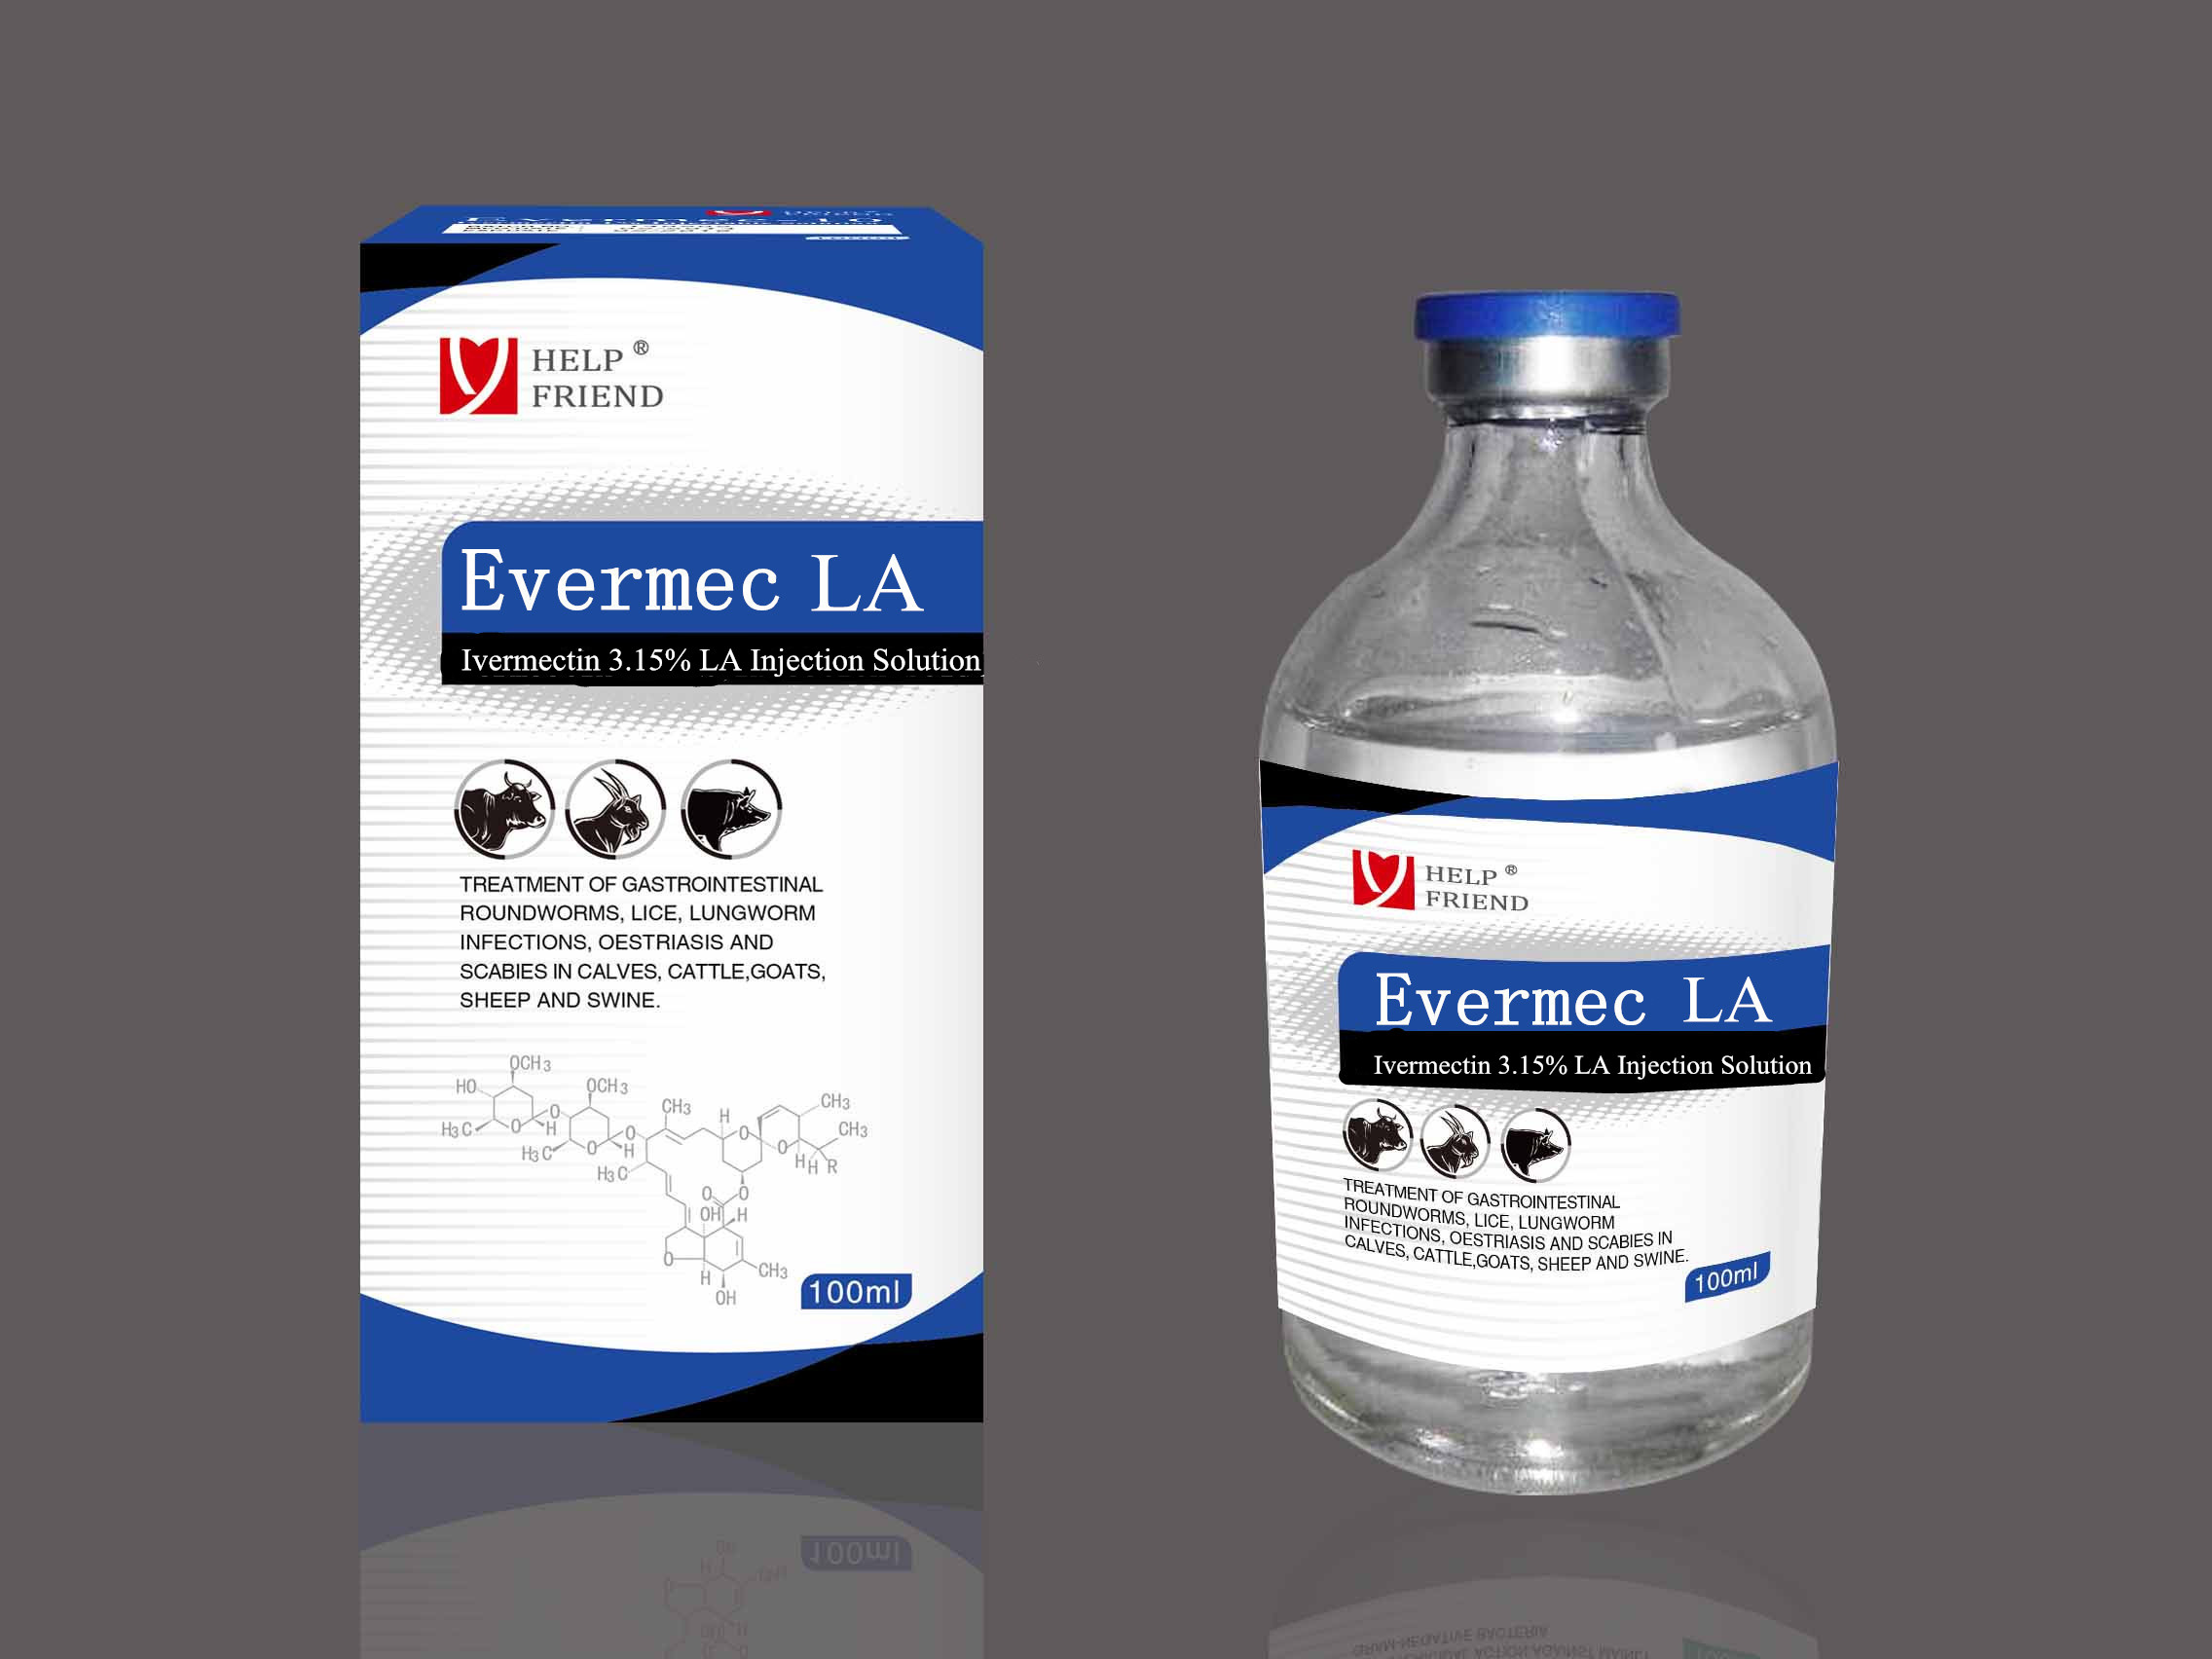 Ivermectin 3.15% LA Injectable Solution